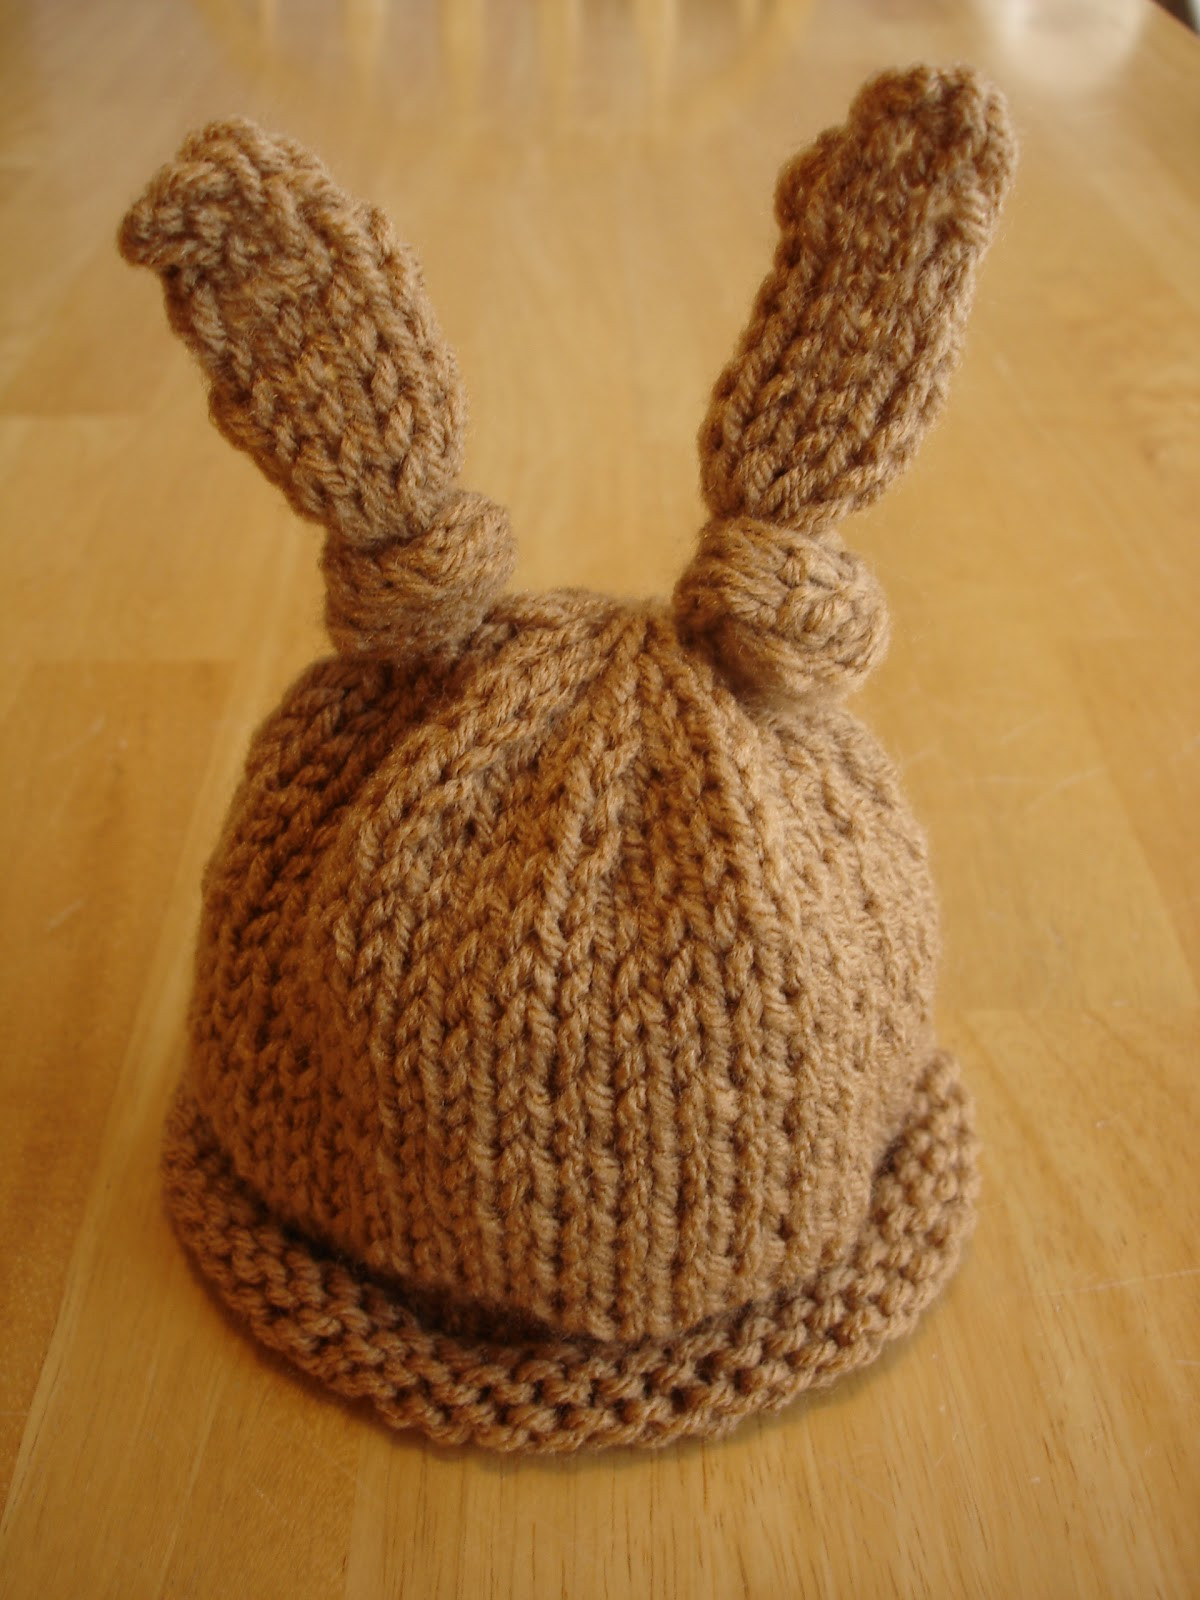 Knitting for Newborns Unique Fiber Flux Free Knitting Pattern Baby Bunny Newborn or Of Awesome 41 Images Knitting for Newborns